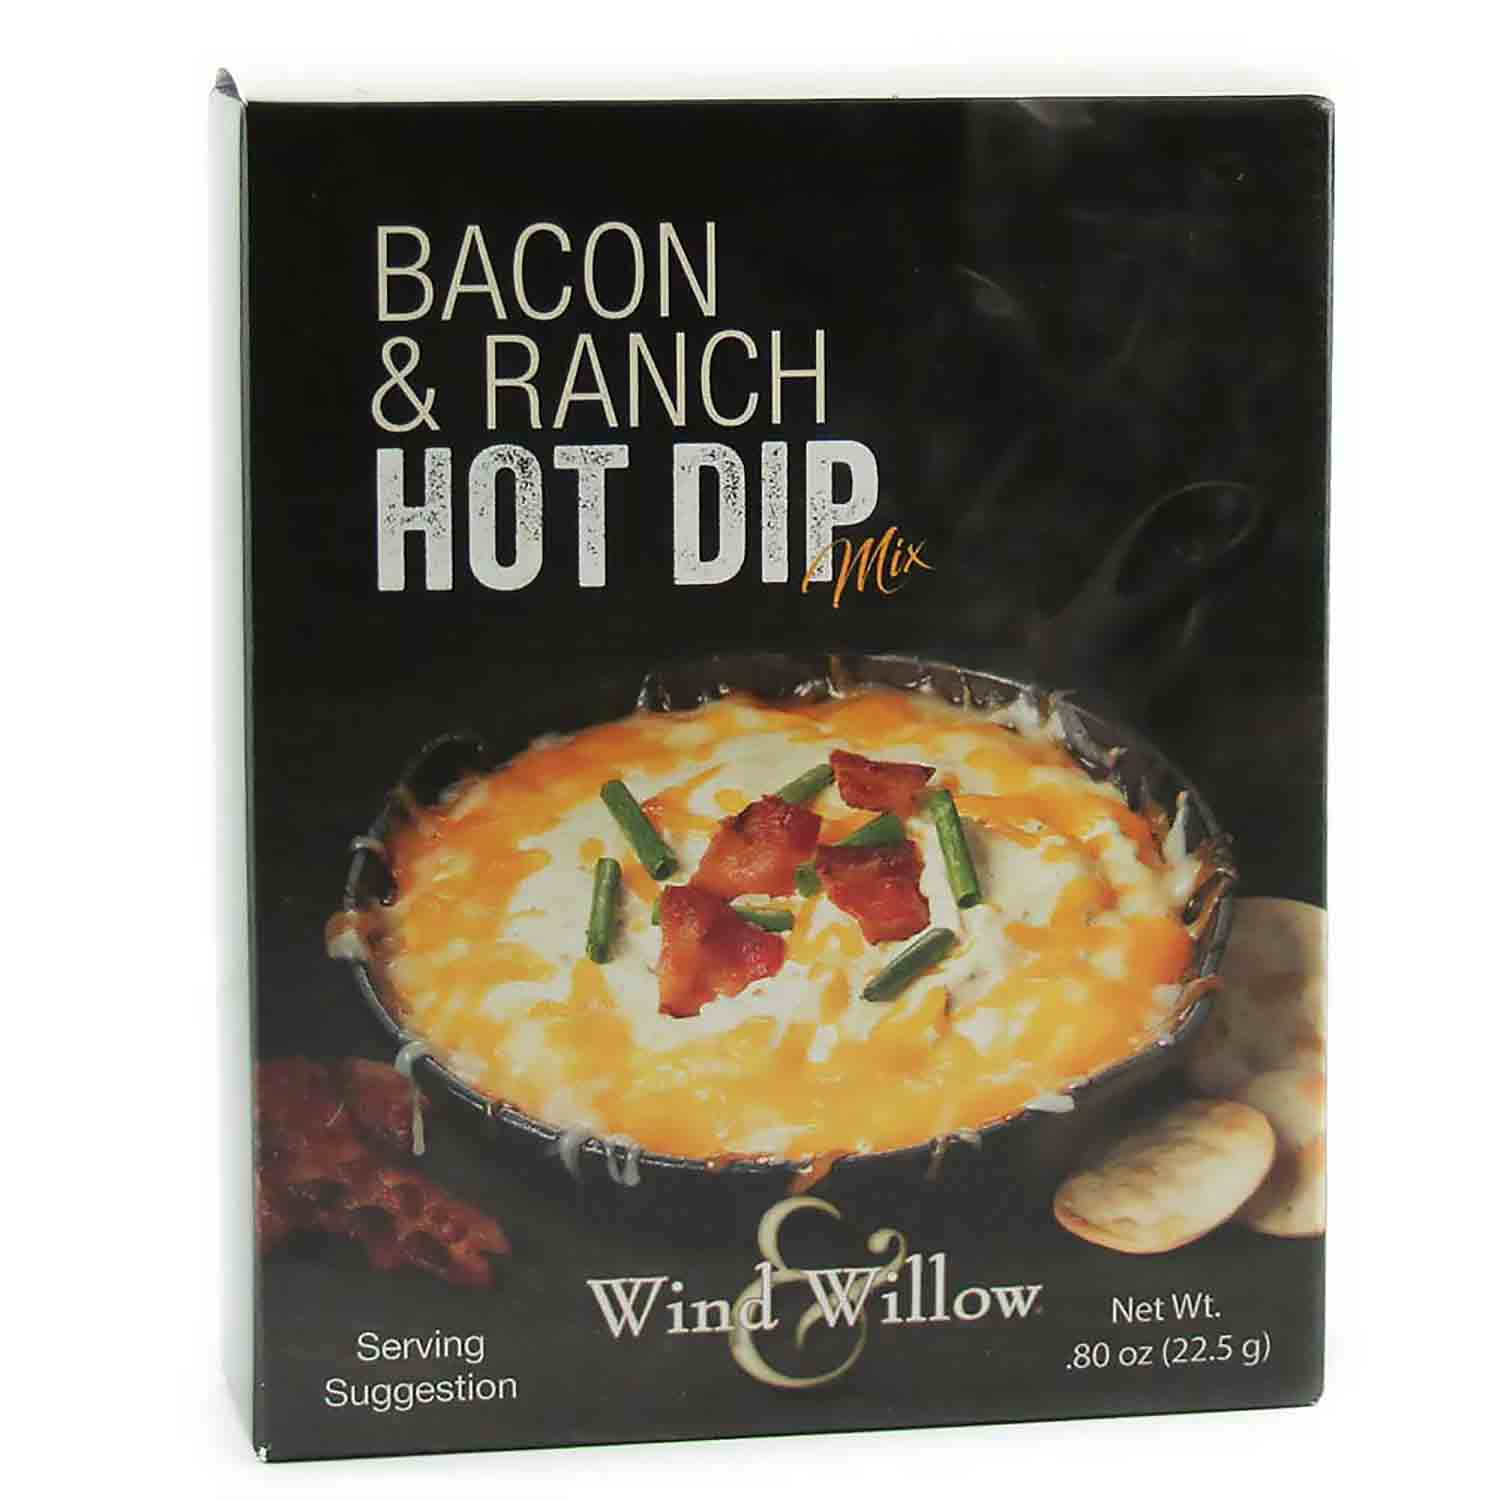 Bacon & Ranch Hot Dip Mix